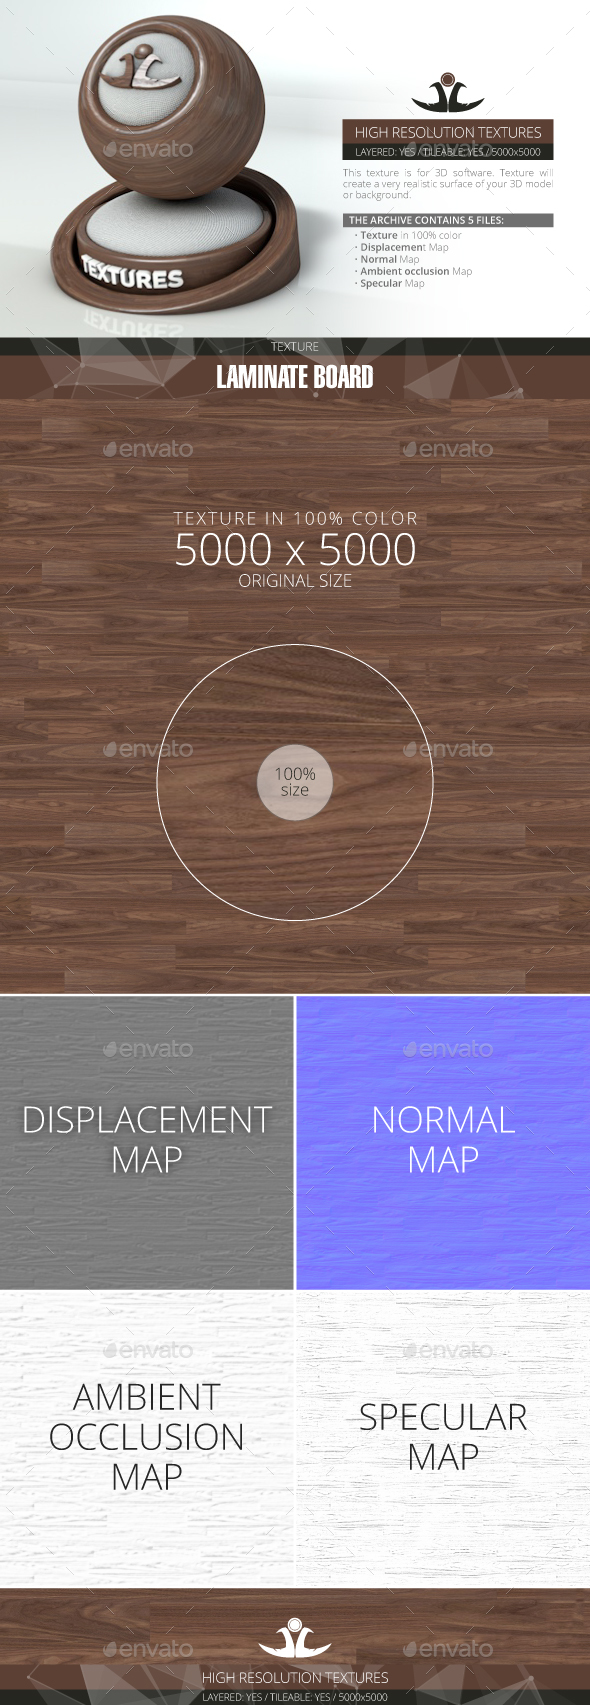 Laminate Board 63 - 3DOcean Item for Sale